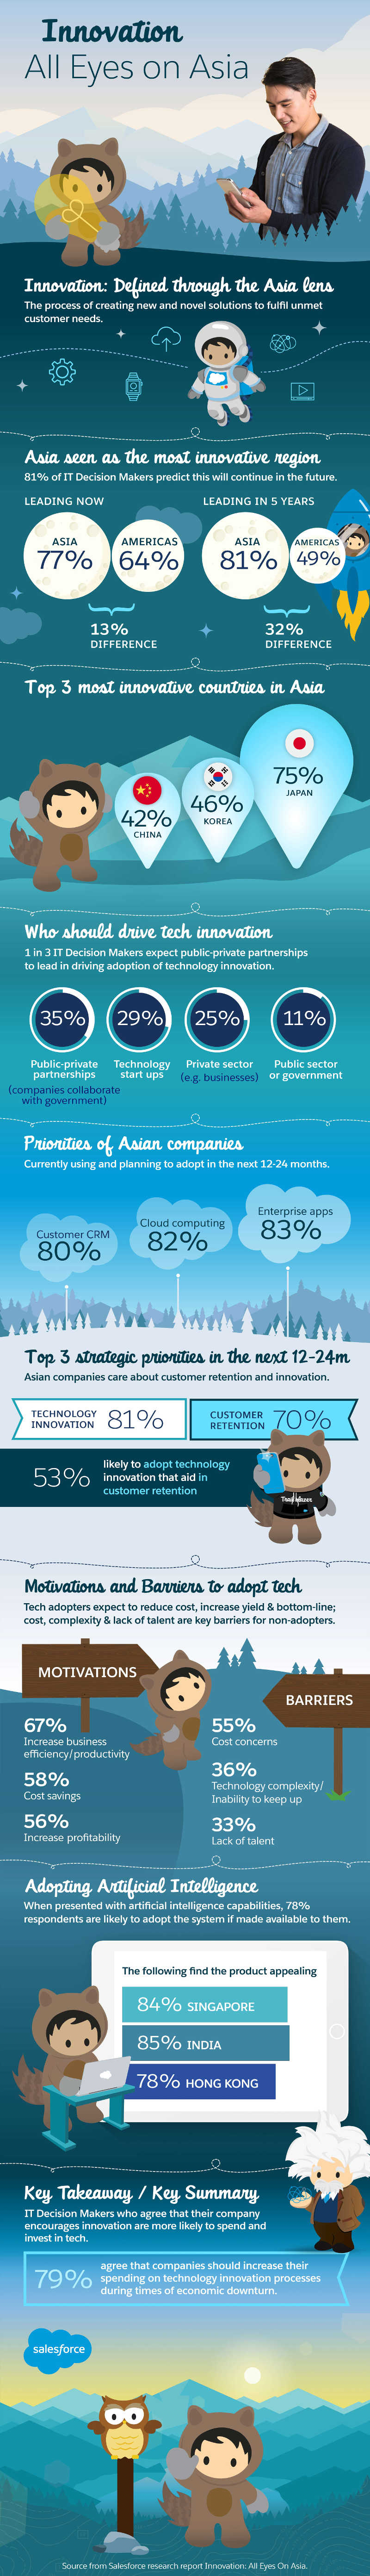 Salesforce Innovation report infographic